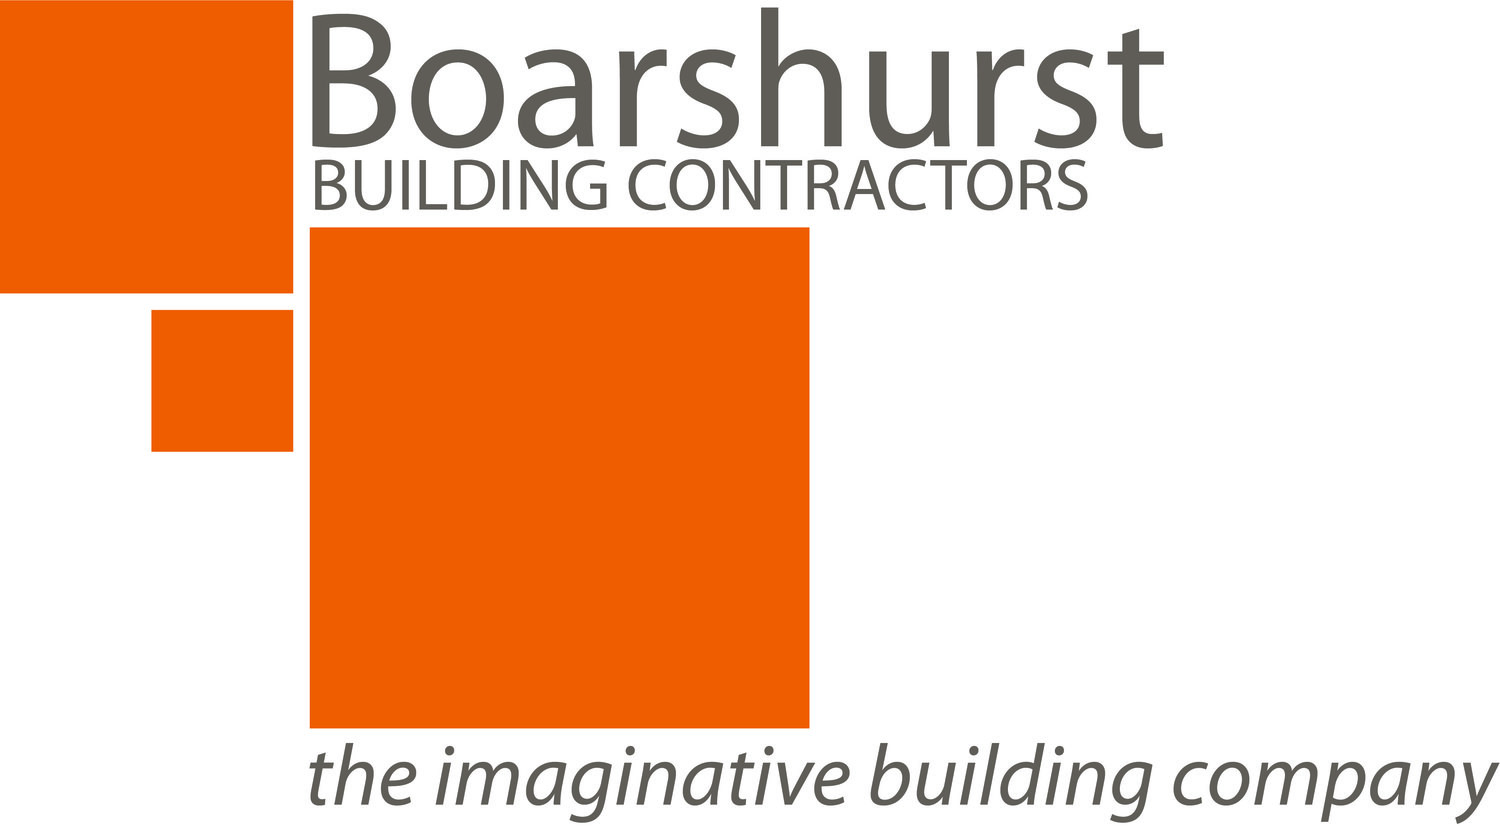 Boarshurst Building Contractors